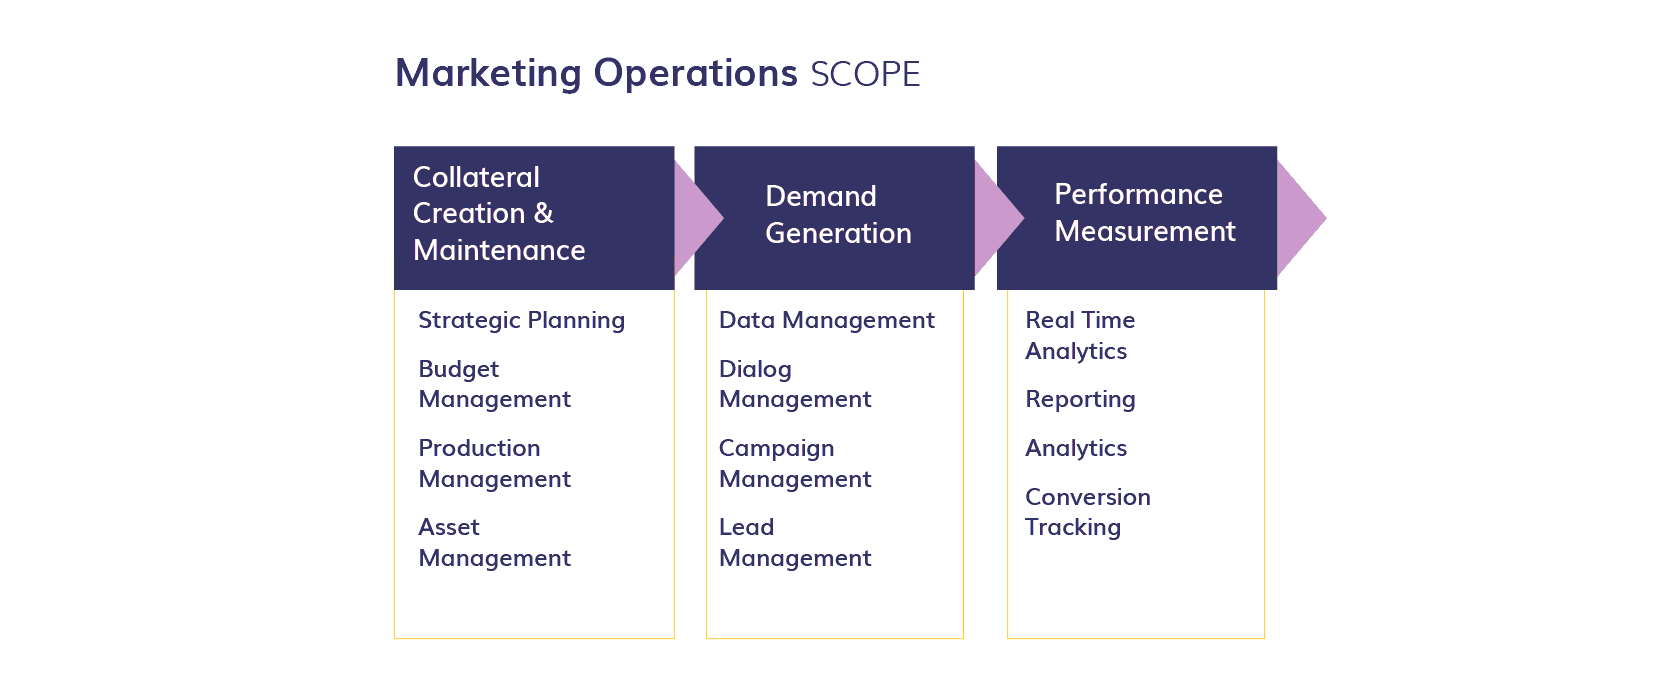 The Scope of Marketing operations